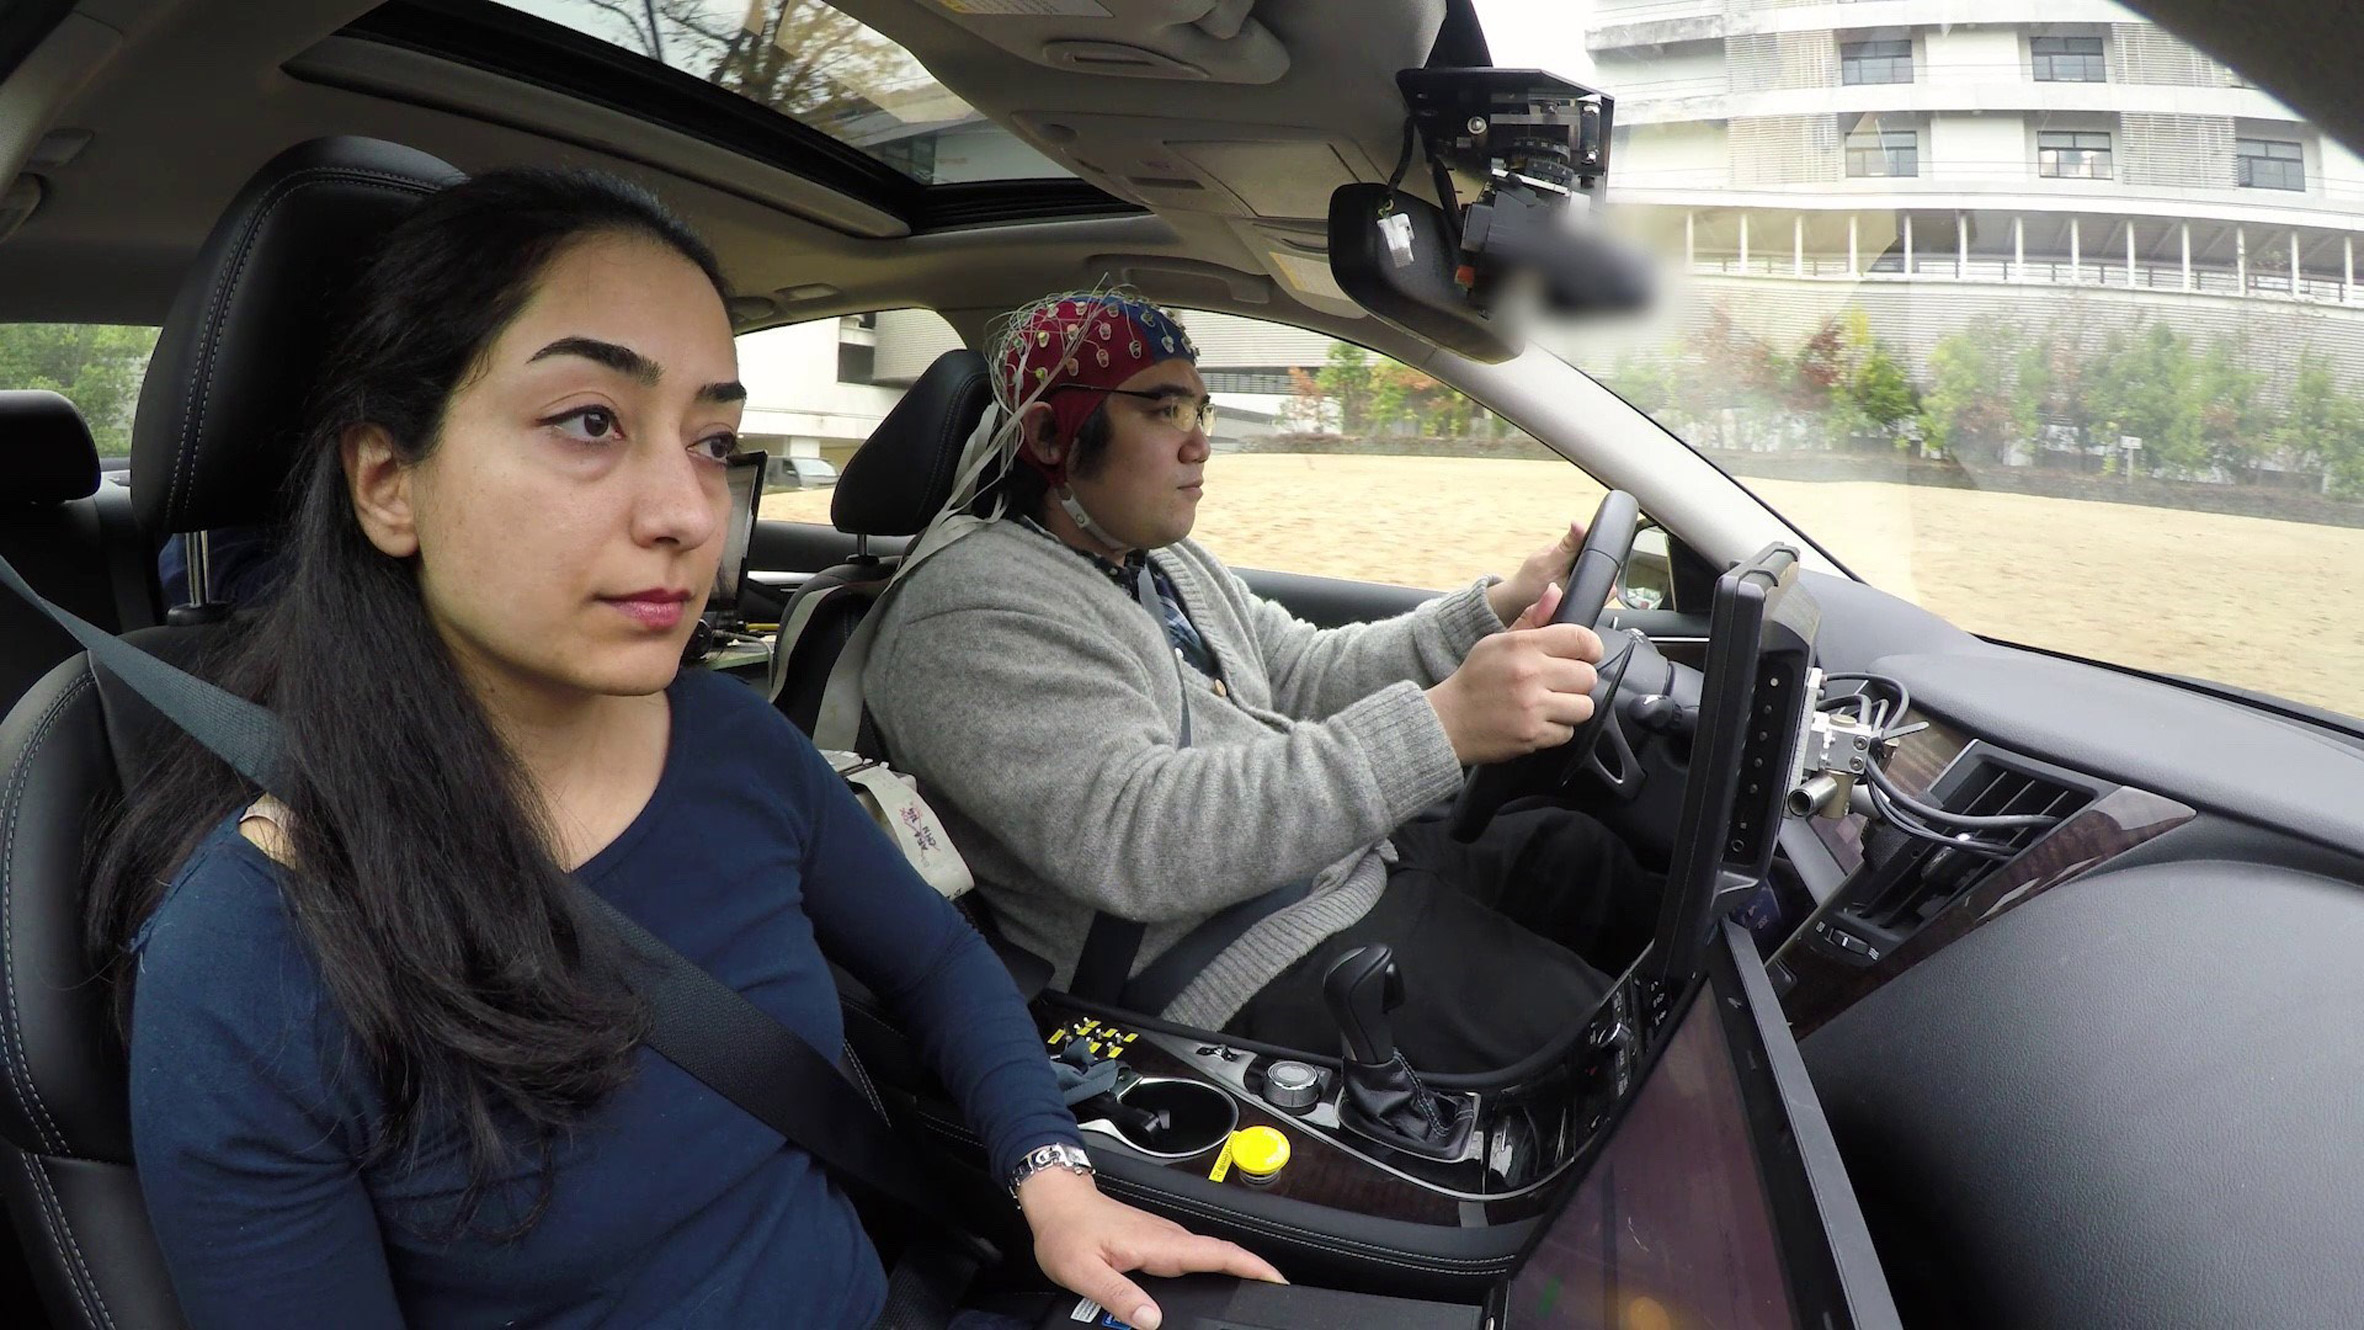 Nissan's latest technology allows cars to respond to drivers' brainwaves